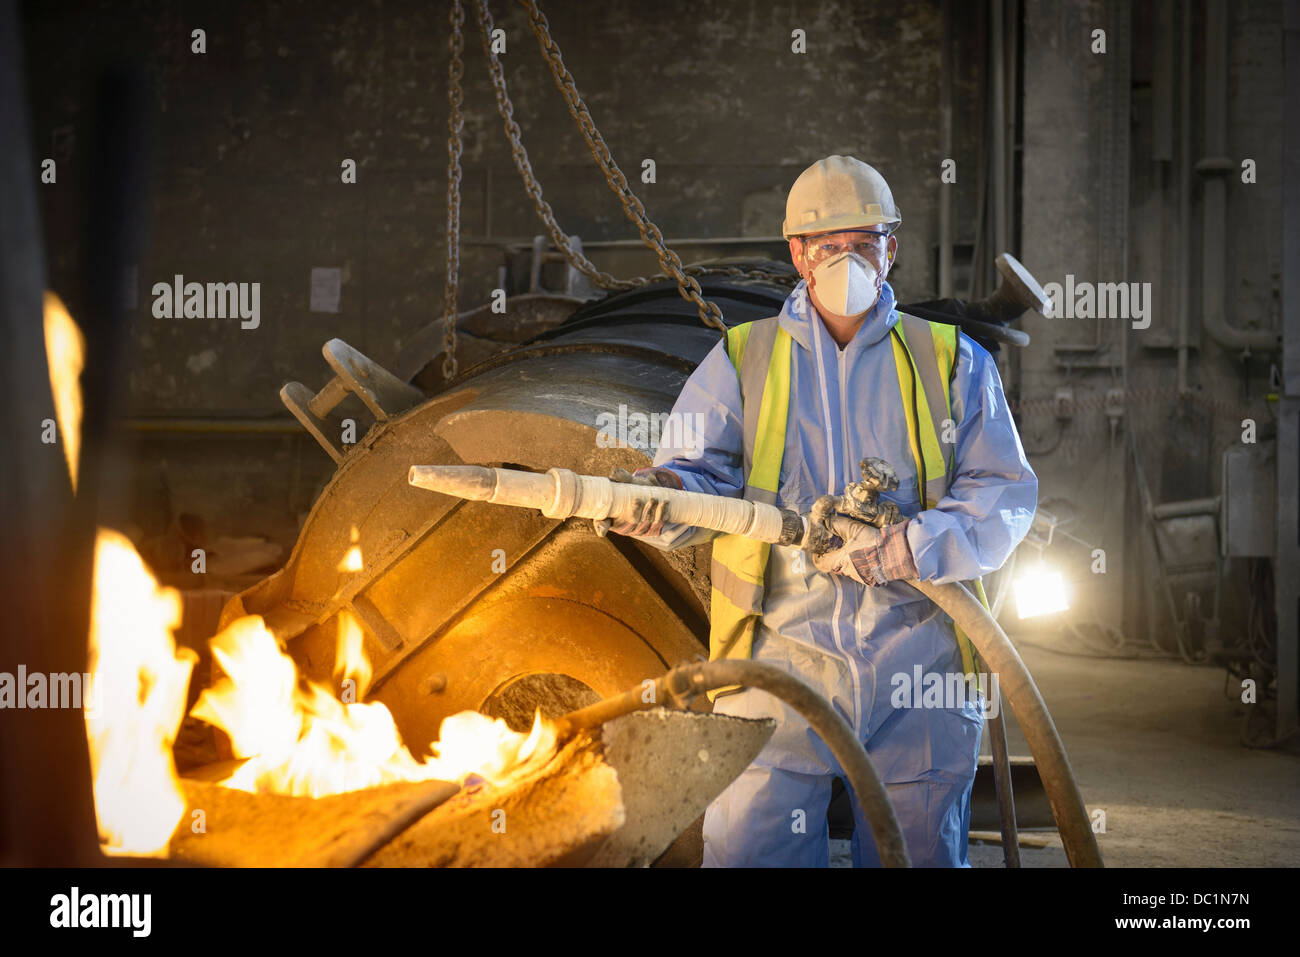 Portrait of steel worker holding industrial hose in steel foundry - Stock Image